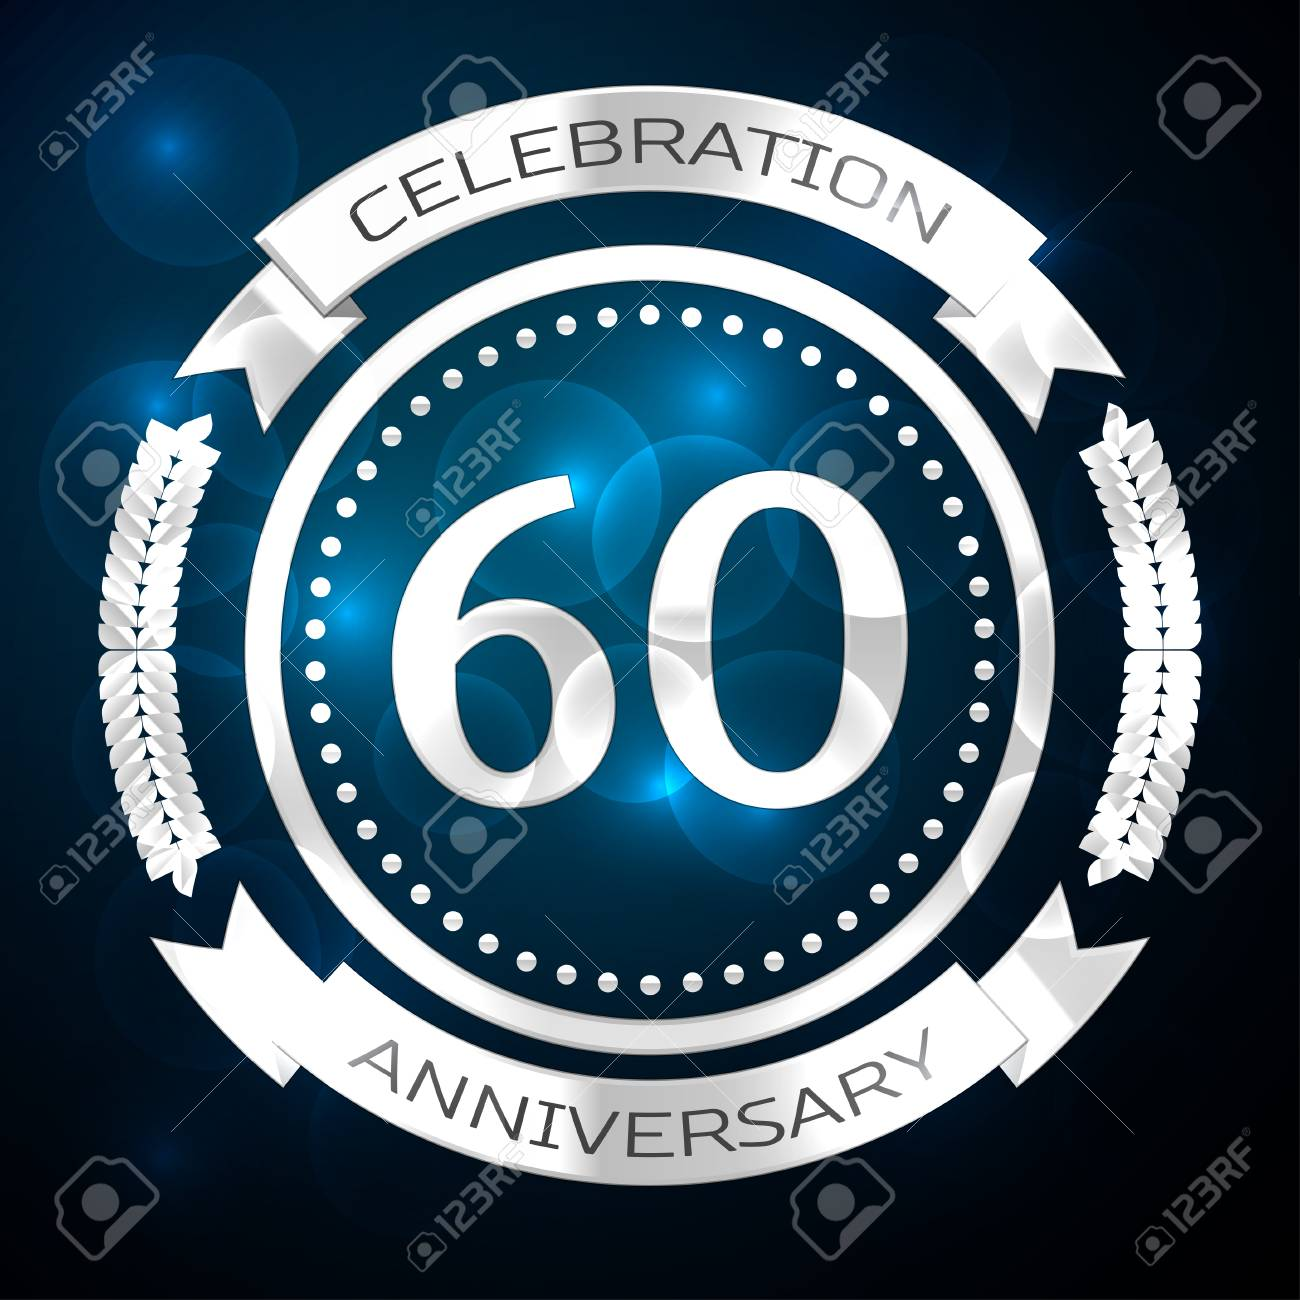 Sixty years anniversary celebration with silver ring and ribbon on blue background. Vector illustration - 71908221